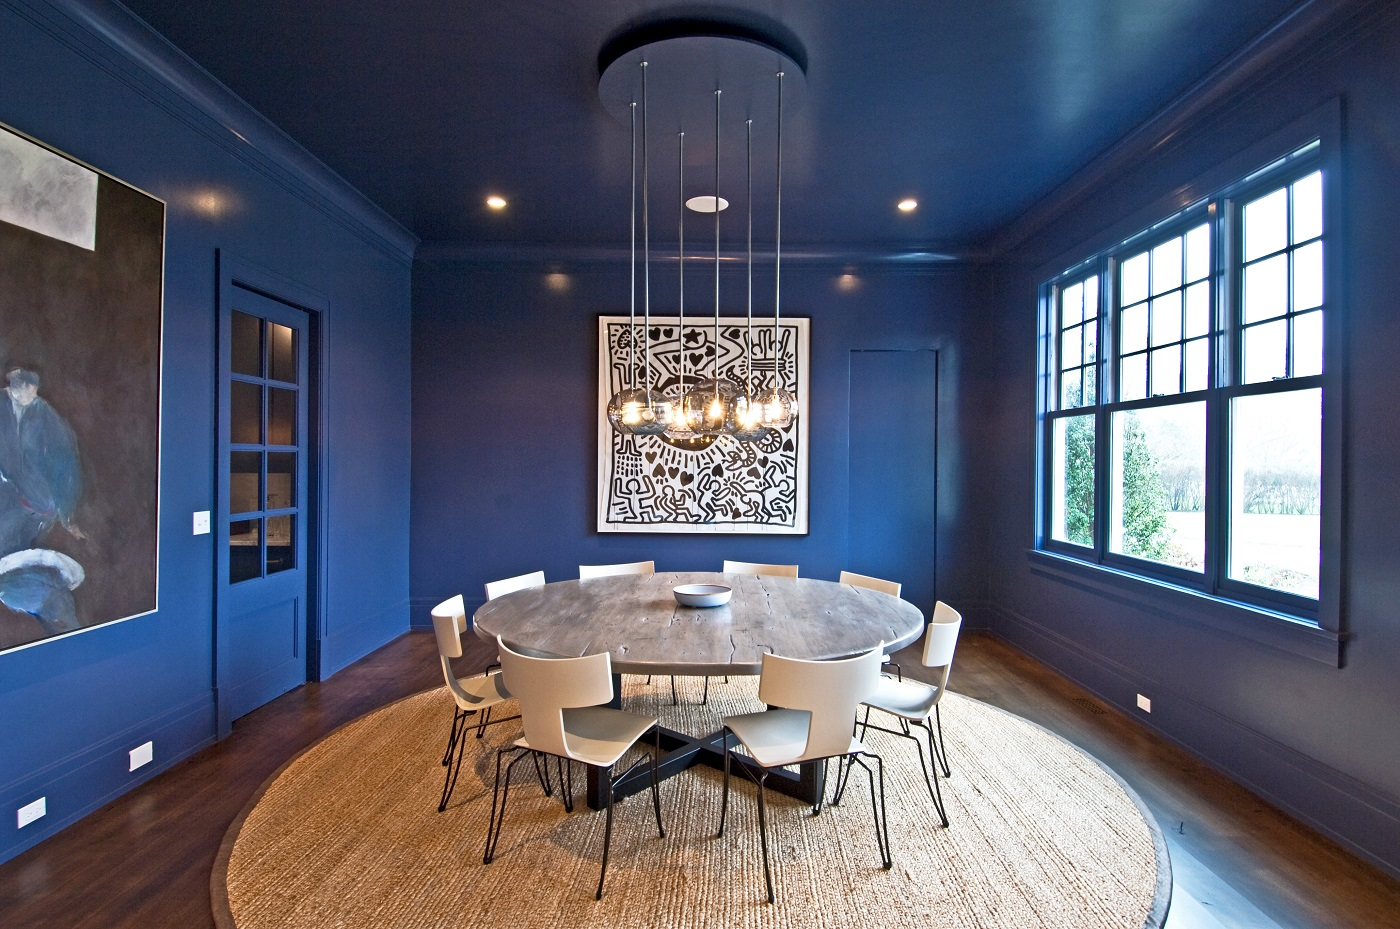 Entire room painted blue